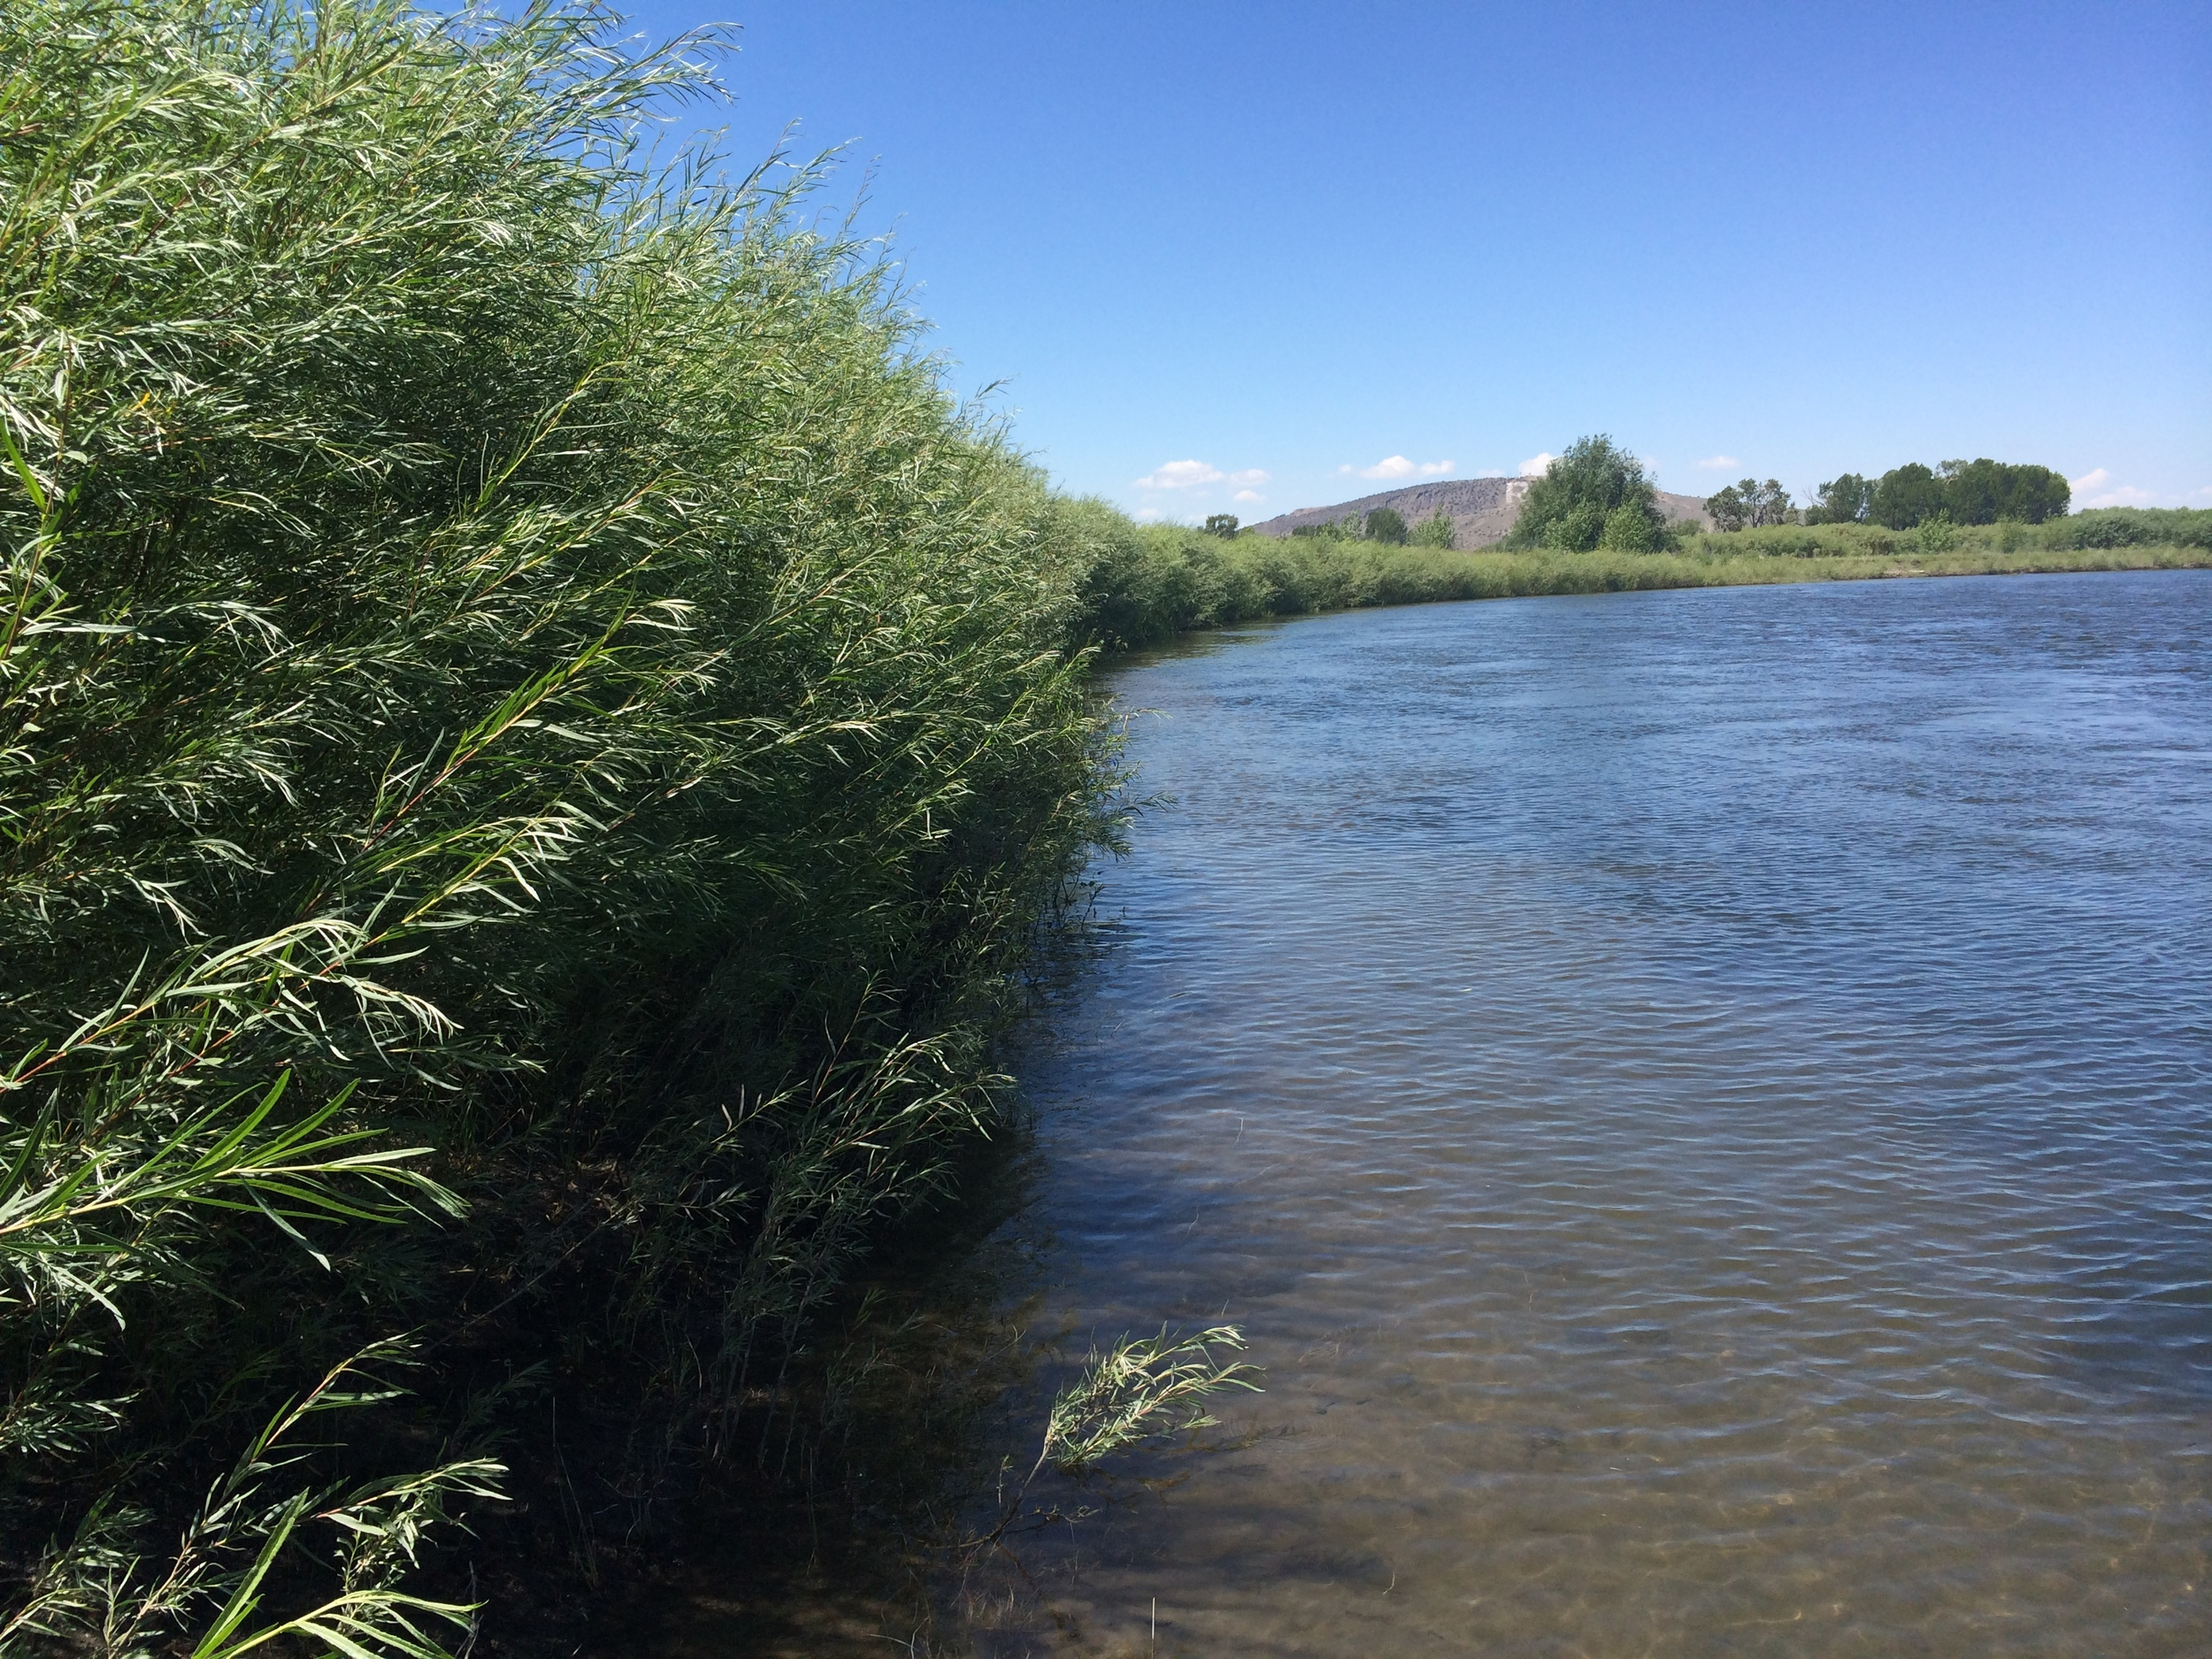 Dense willows growing along a bank that was eroding and unstable prior to construction